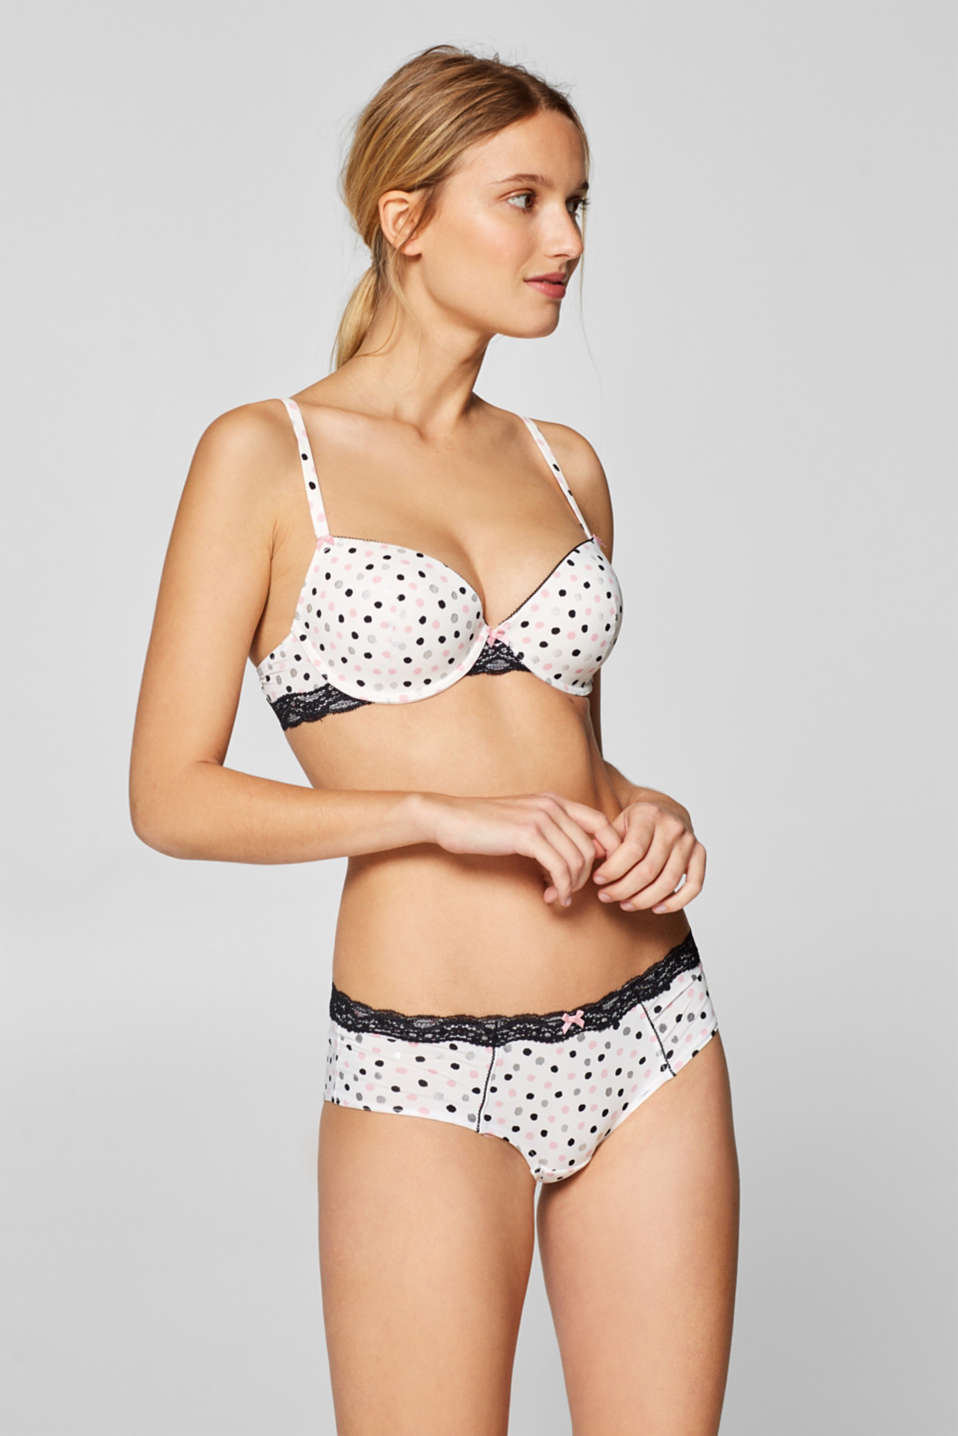 Esprit - Padded underwire bra with polka dots and lace